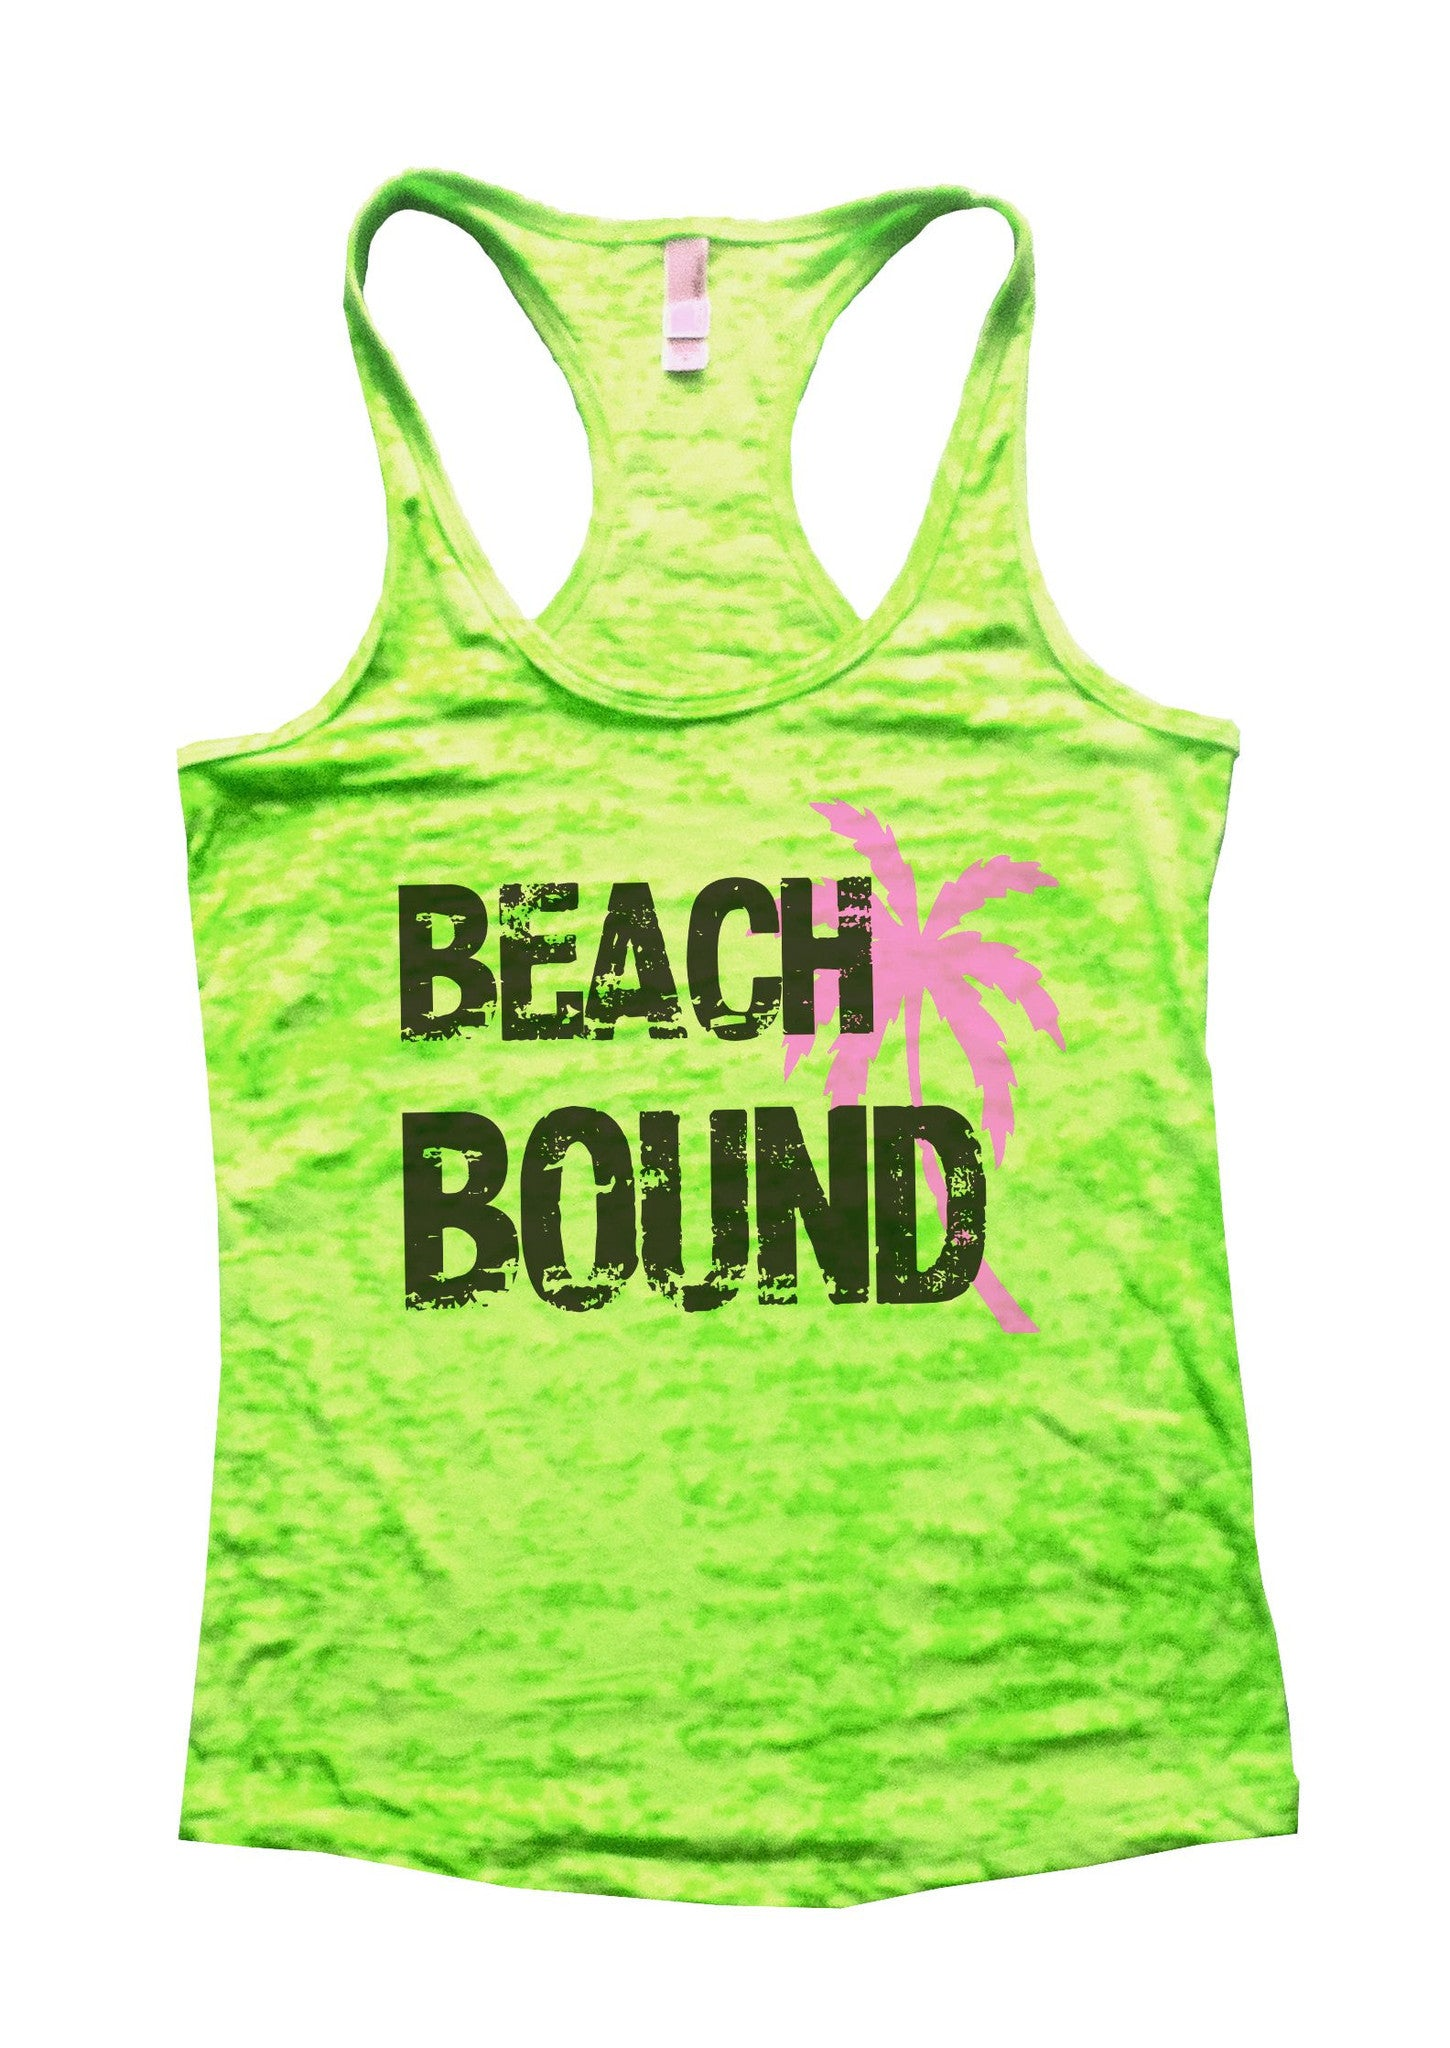 Beach Bound Burnout Tank Top By BurnoutTankTops.com - 748 - Funny Shirts Tank Tops Burnouts and Triblends  - 2